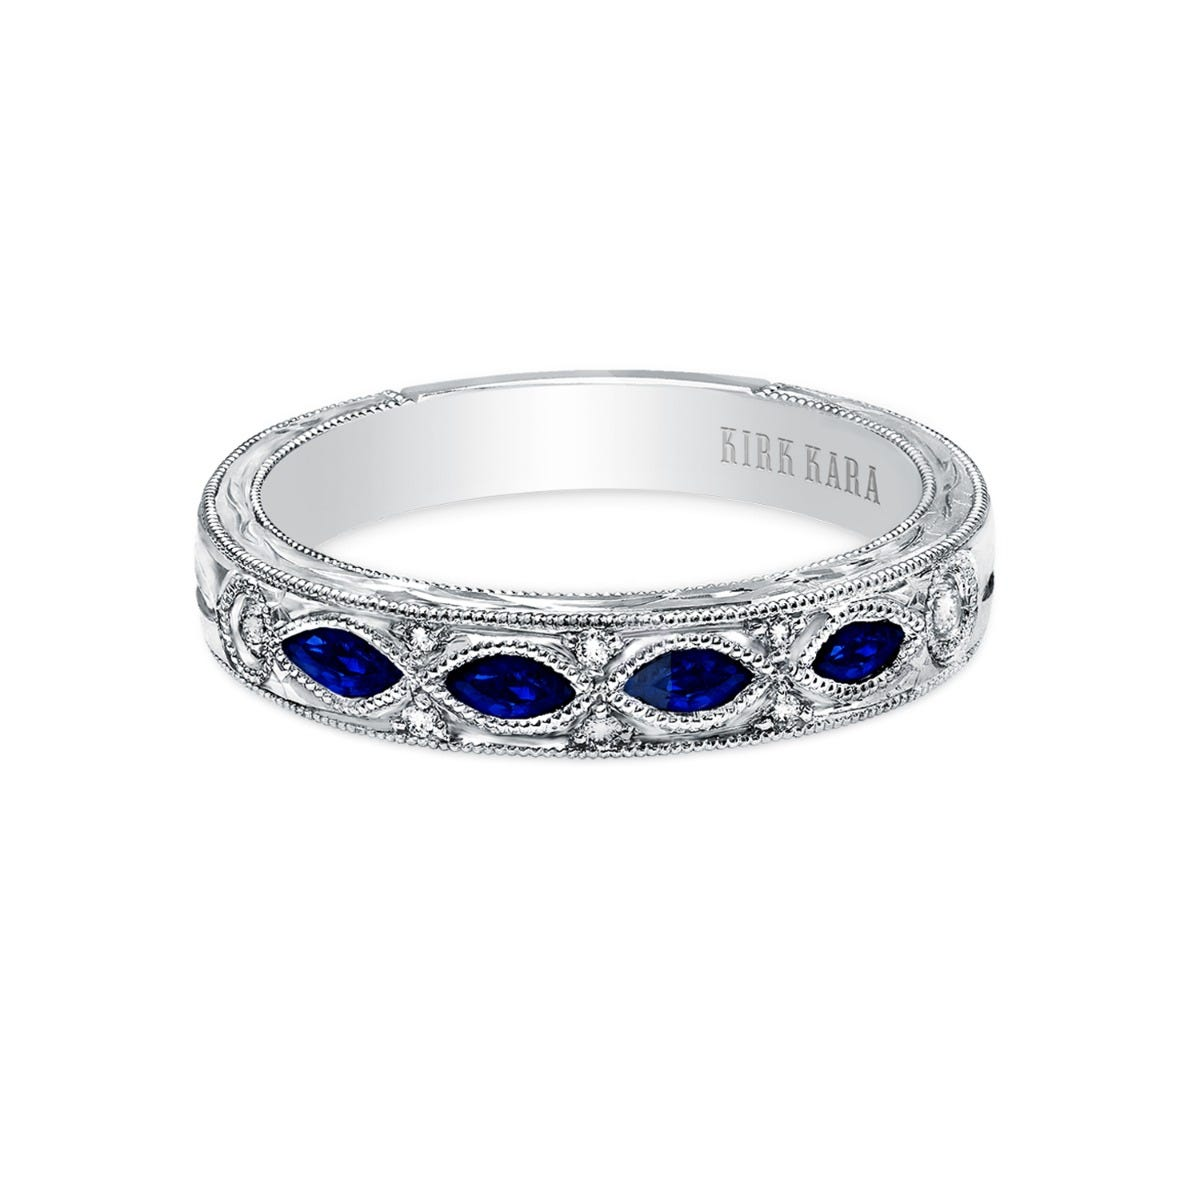 Blue Sapphire and Marquise-Cut Diamond Botanical Band in 18k White Gold K1120SD-B